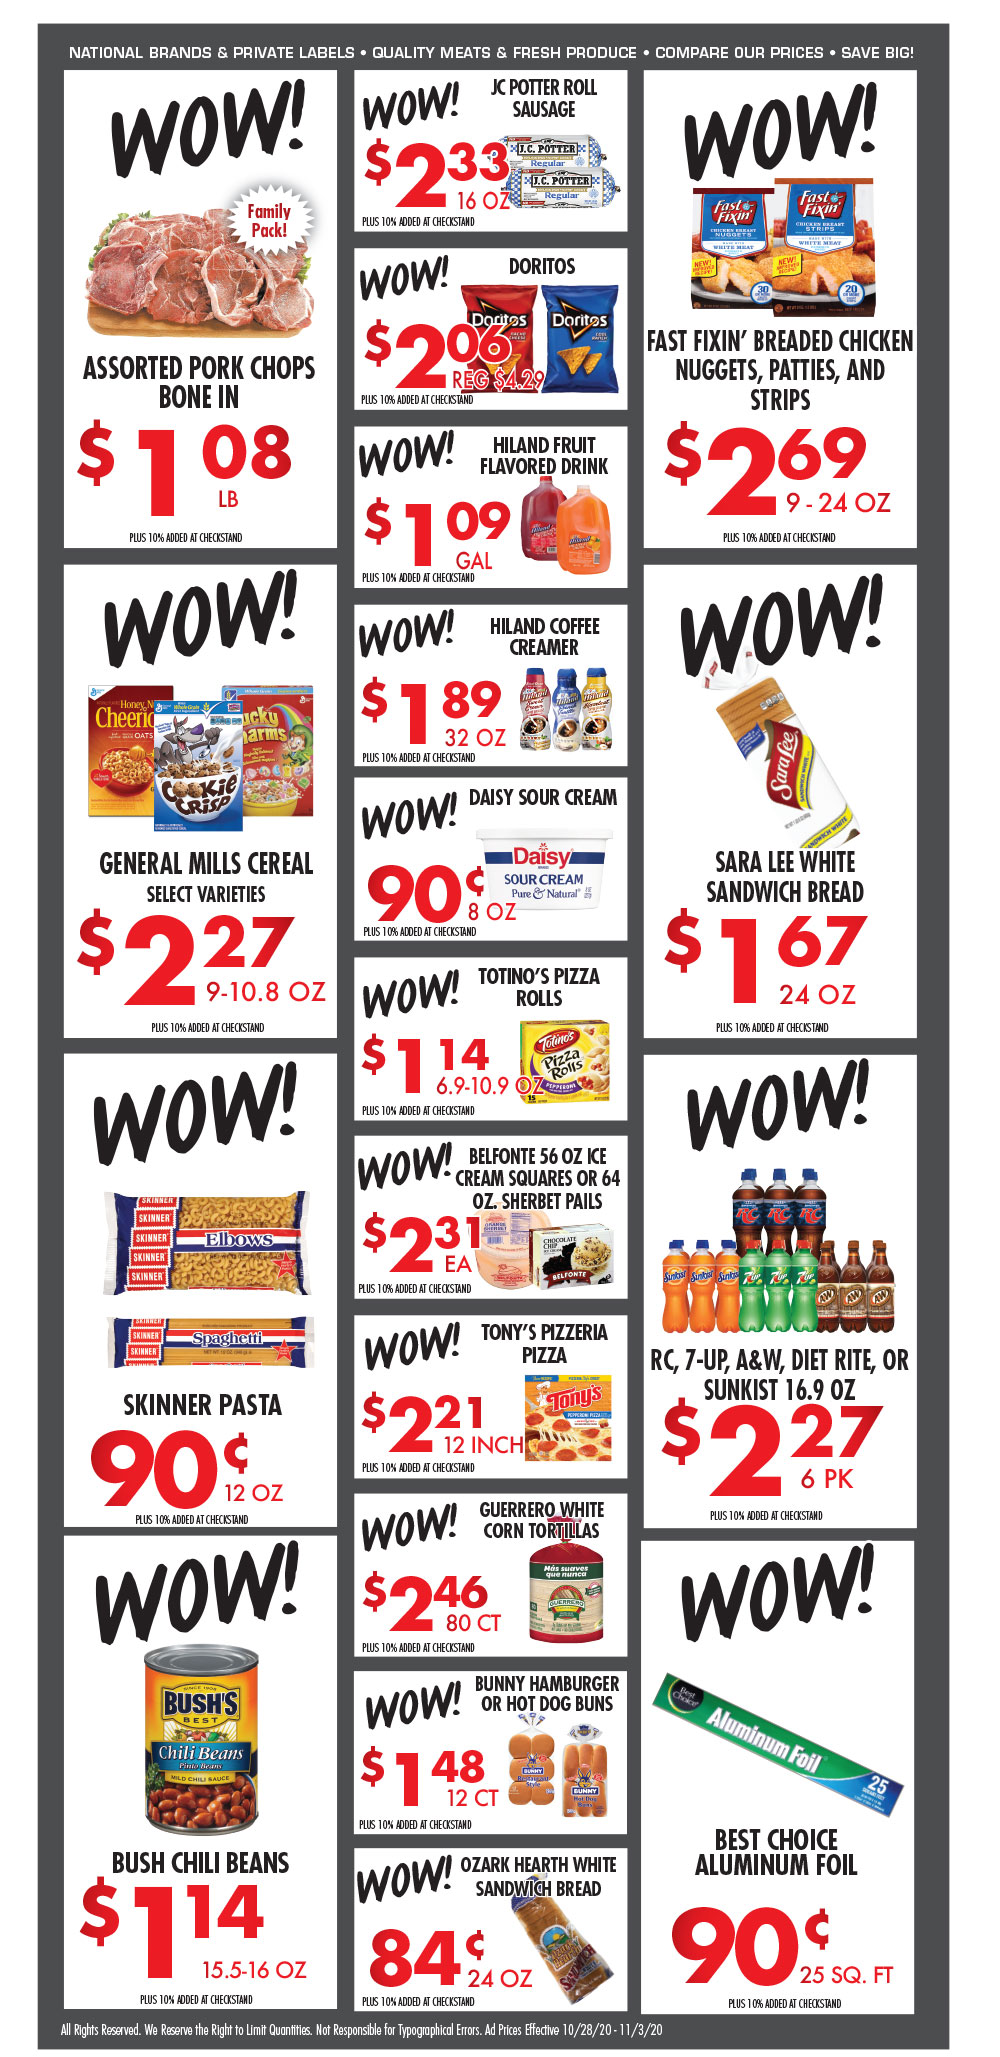 Cox Cash Saver specials for week of 10-28-20